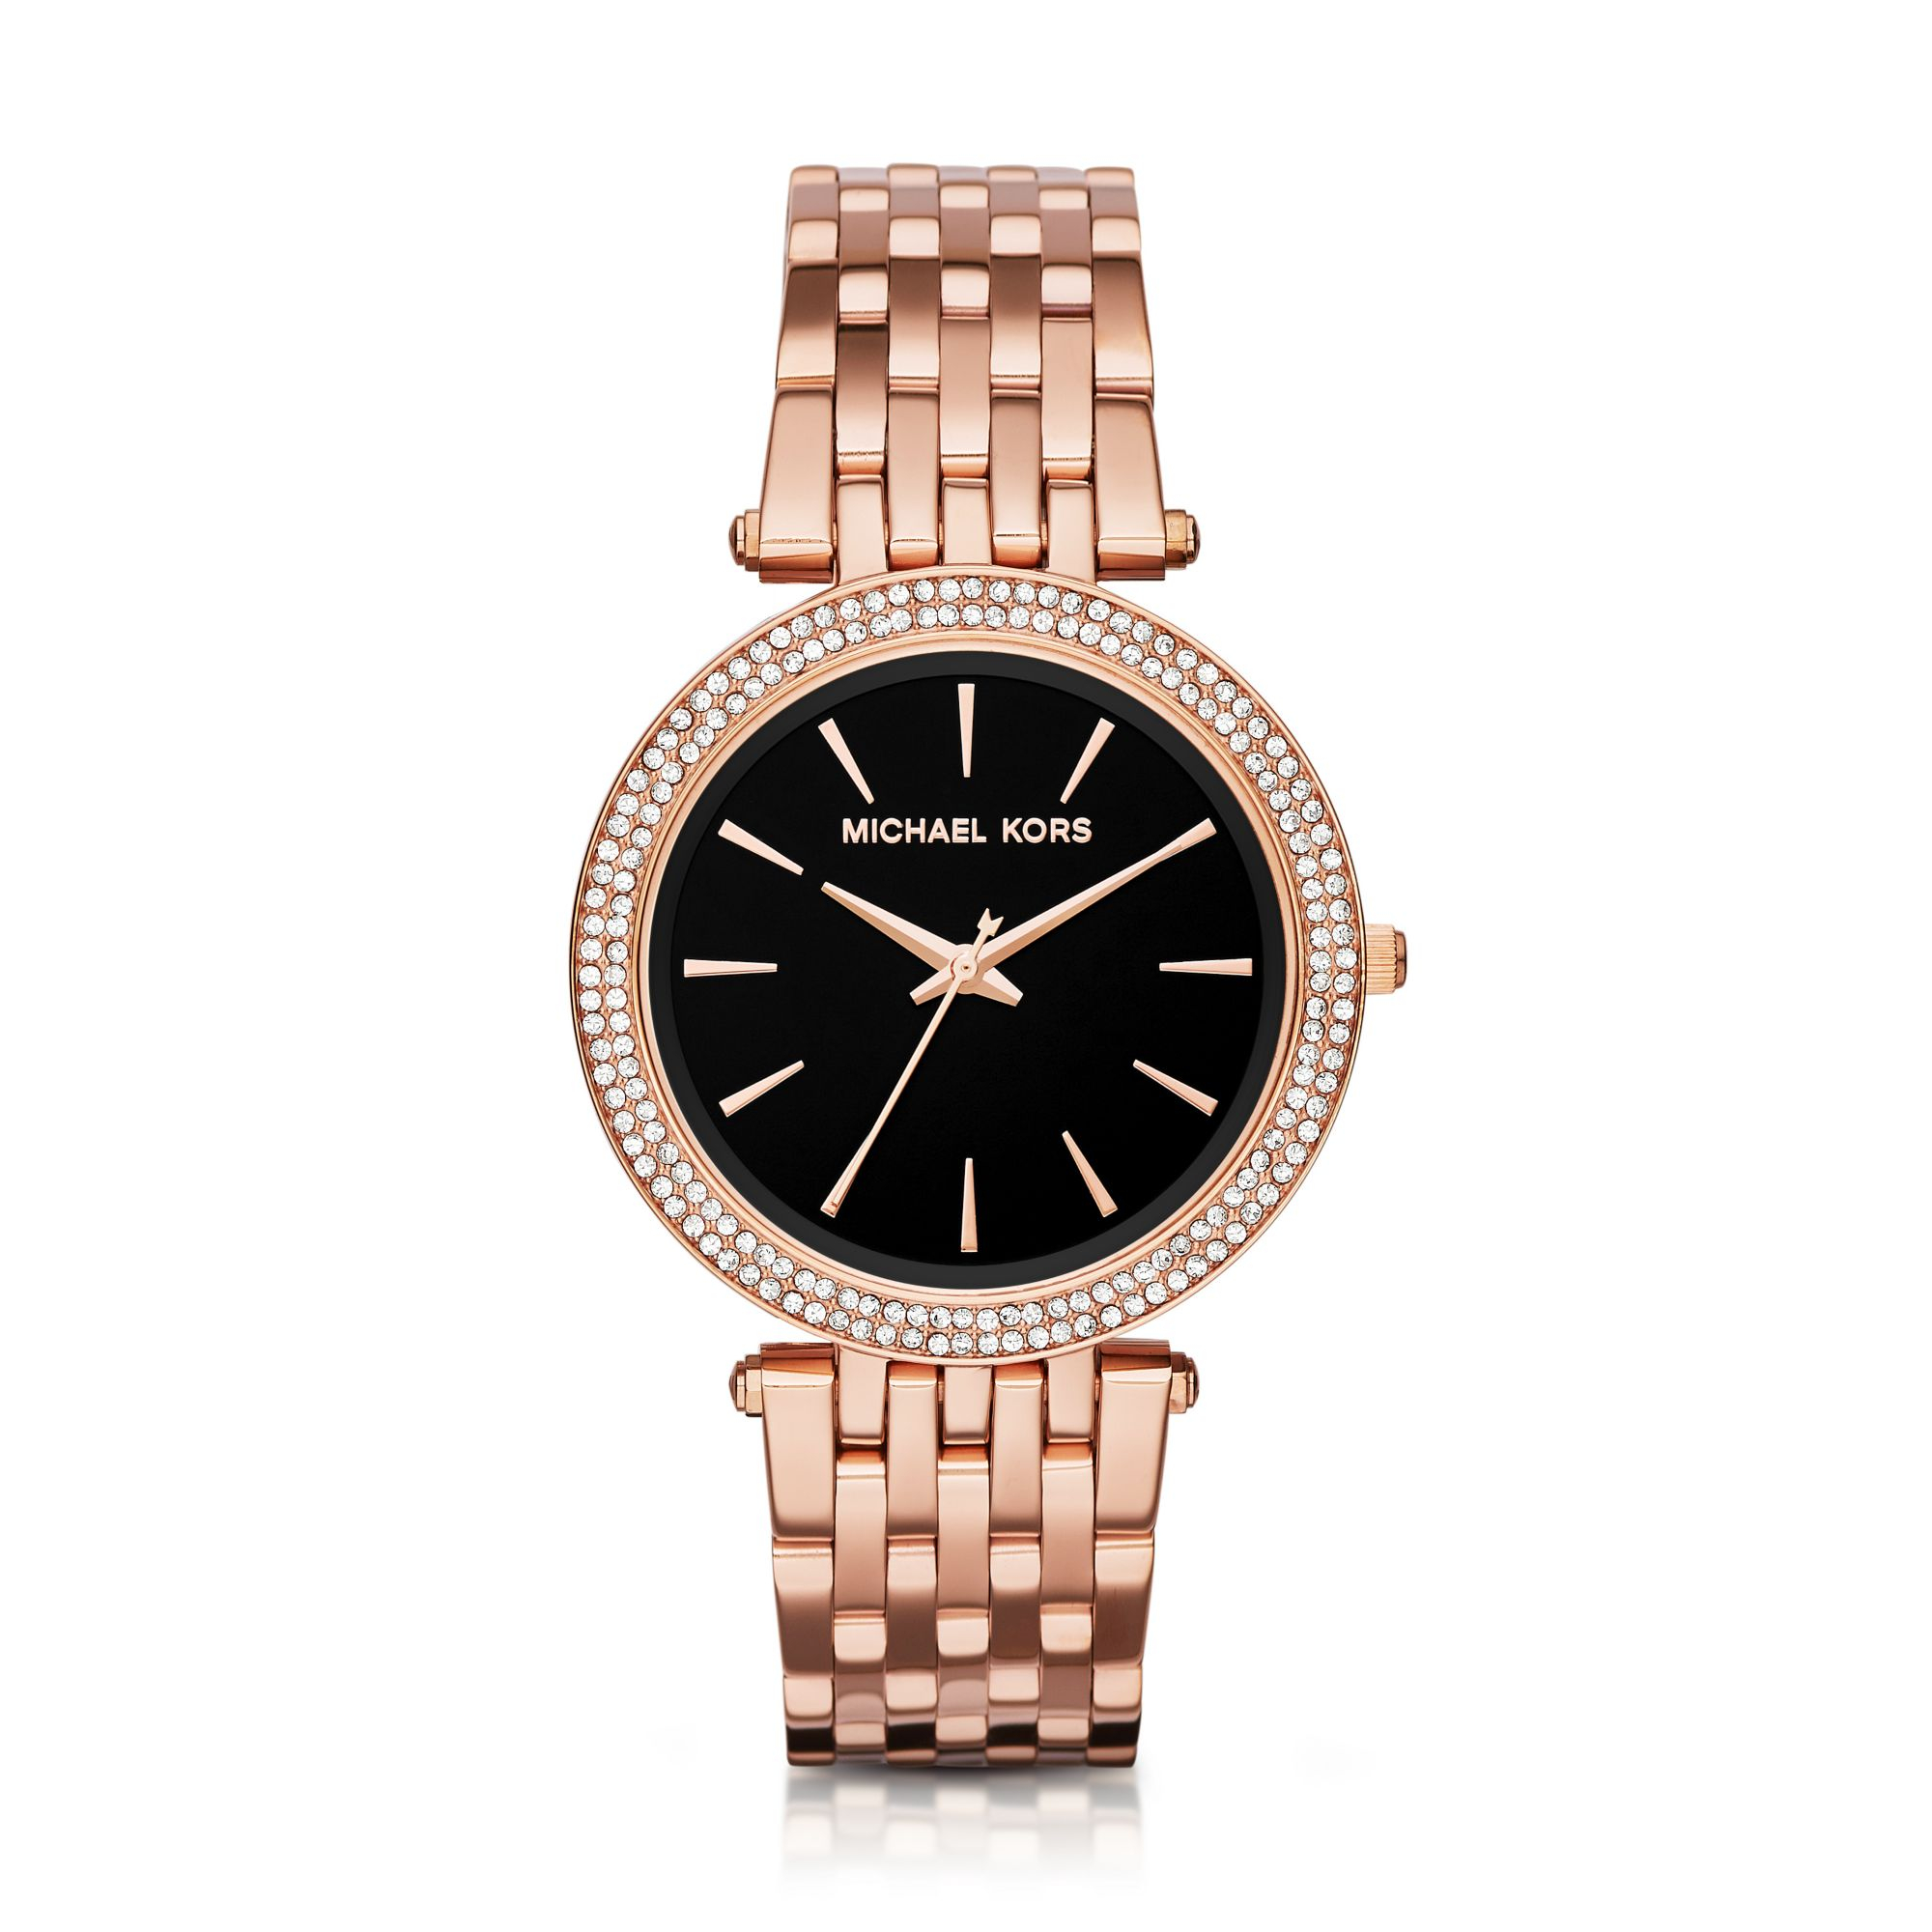 Lyst - Michael Kors Darci Pavé Rose Gold-tone Watch in Pink